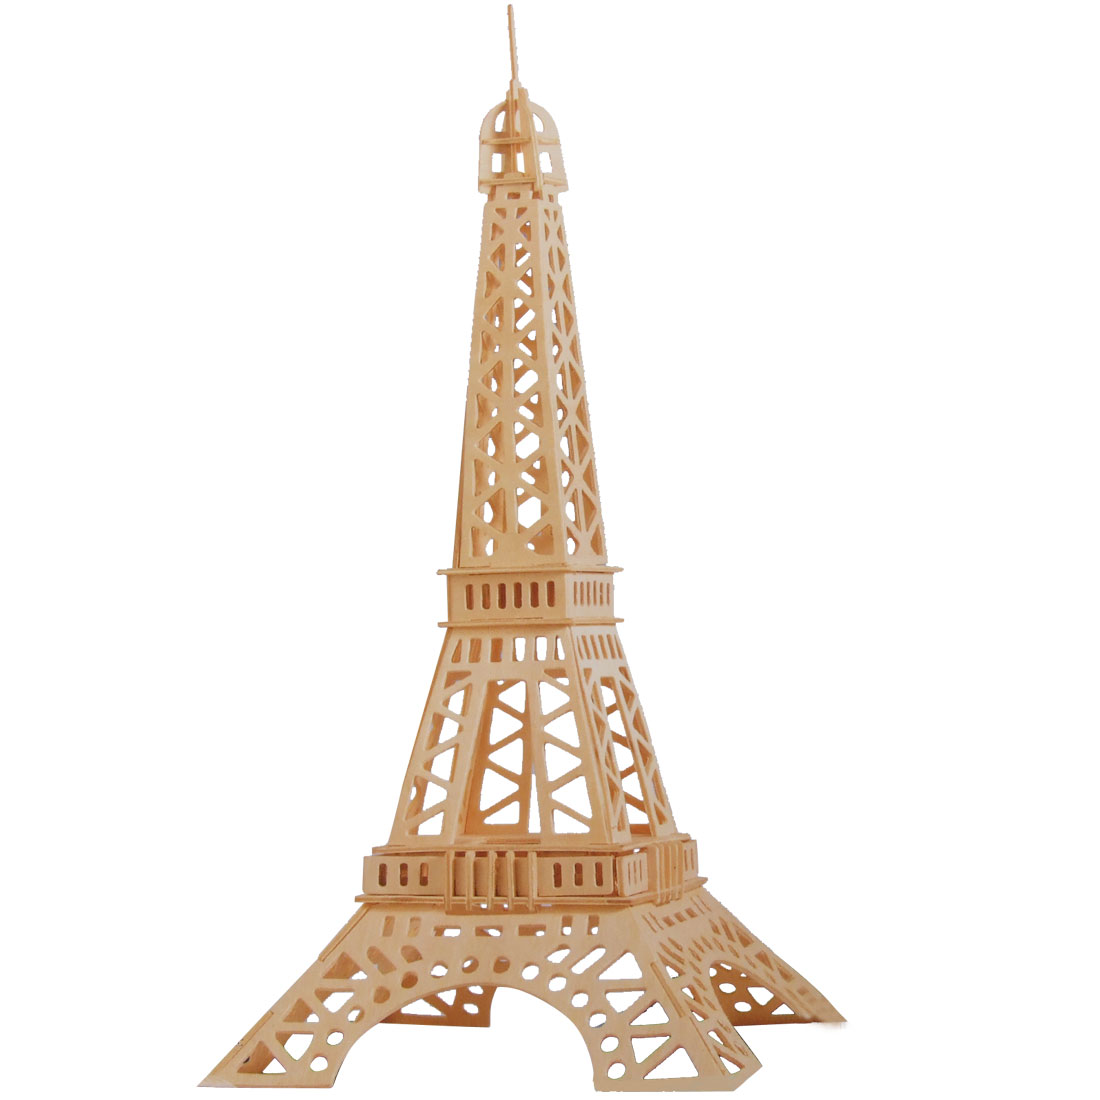 Assemble Eiffel Tower Model DIY Puzzle Wooden Construction Kit Gift